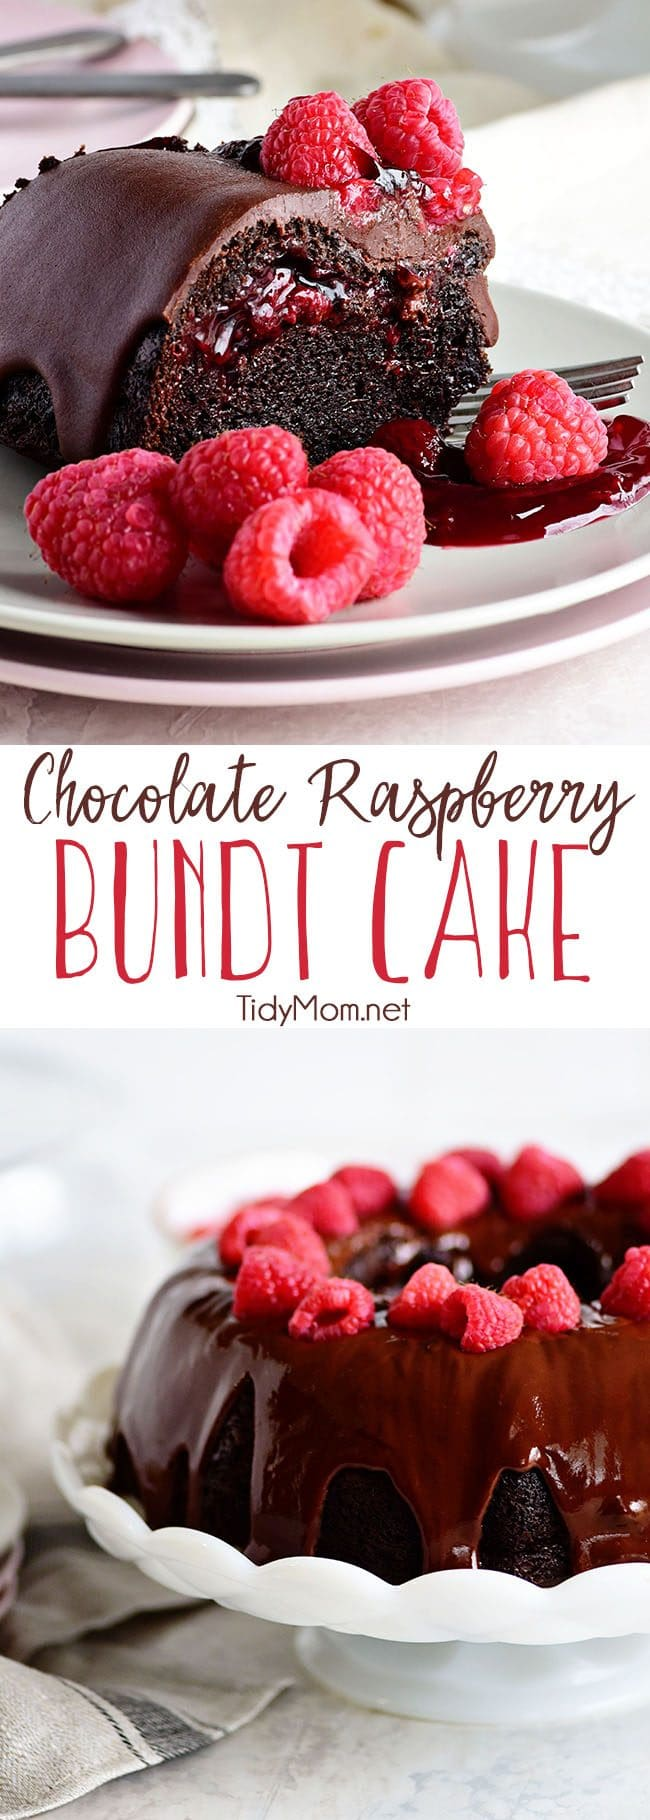 Chocolate Raspberry Bundt Cake with a surprise raspberry filling and a Chocolate Chambord Glaze photo collage